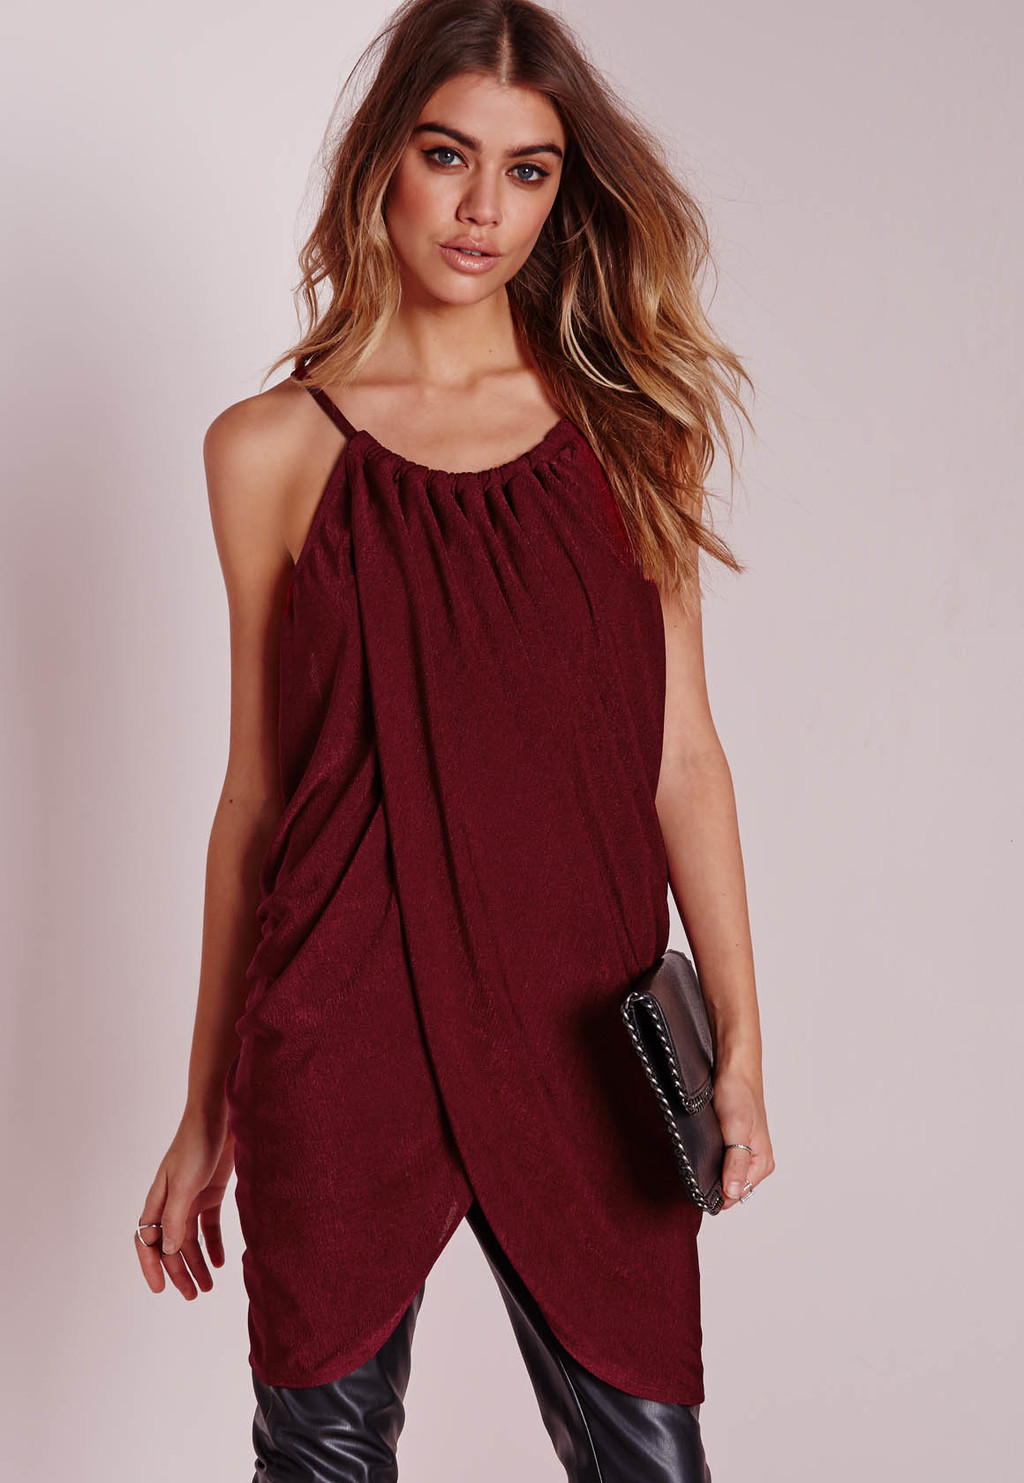 Gather Wrap Longline Cami Burgundy, Burgundy - pattern: plain; sleeve style: sleeveless; length: below the bottom; style: vest top; predominant colour: burgundy; occasions: casual; neckline: scoop; fibres: polyester/polyamide - stretch; fit: body skimming; sleeve length: sleeveless; pattern type: fabric; texture group: jersey - stretchy/drapey; season: s/s 2016; wardrobe: highlight